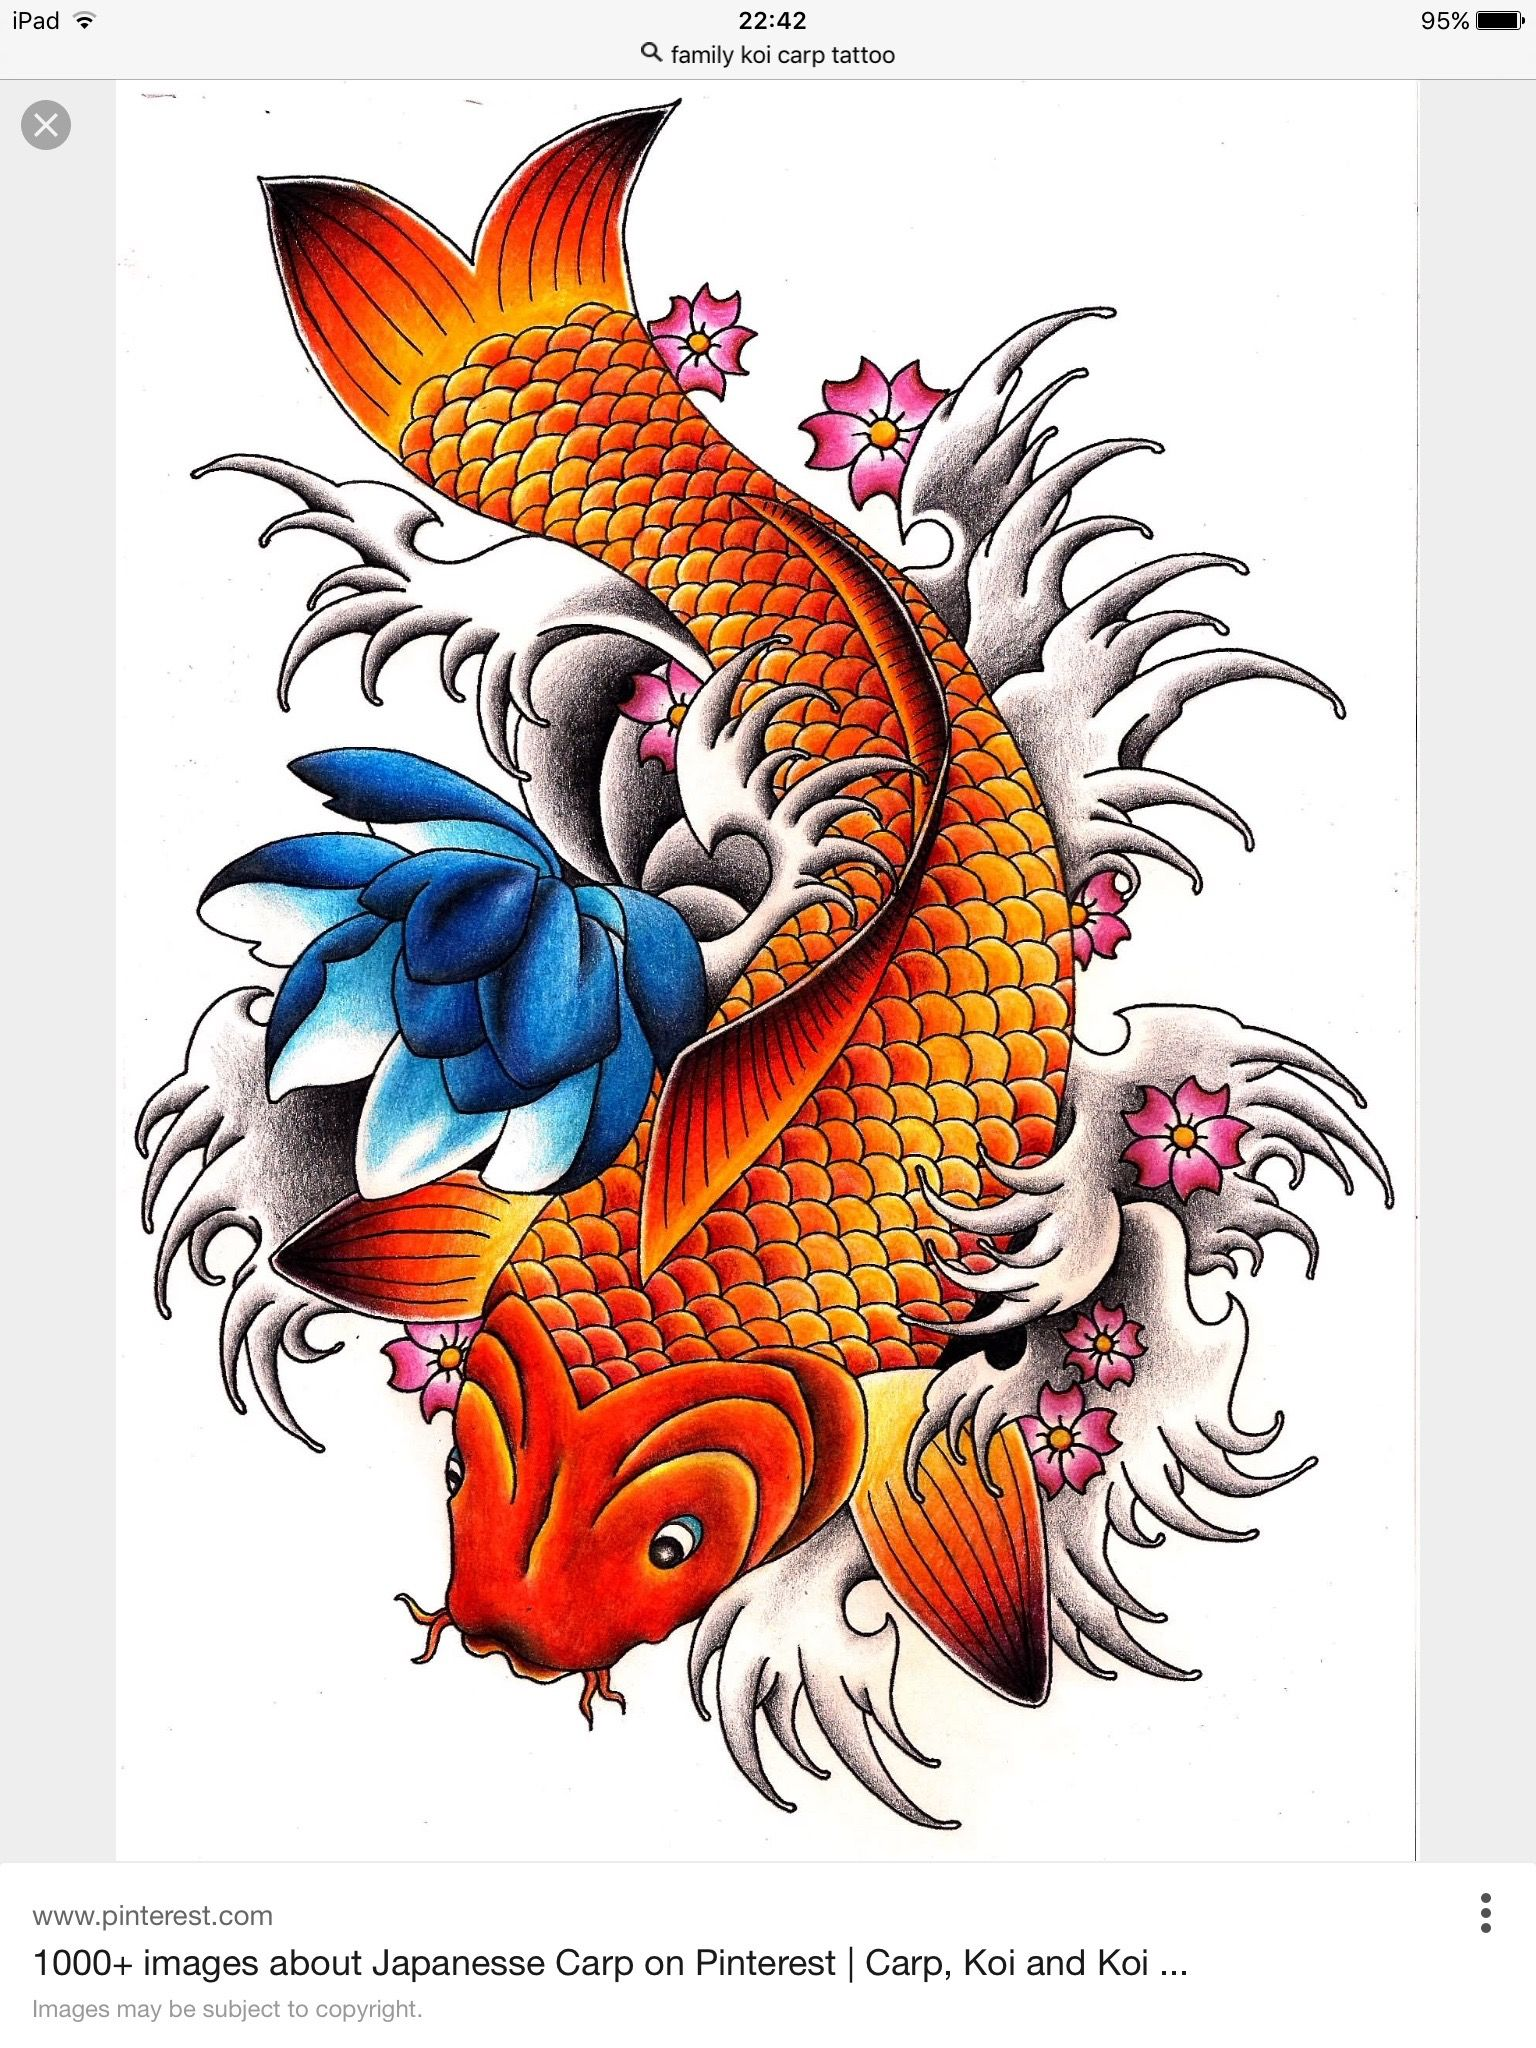 Pin by Yudho Lee on Buddha | Pinterest | Koi, Tattoo and Koi fish tattoo